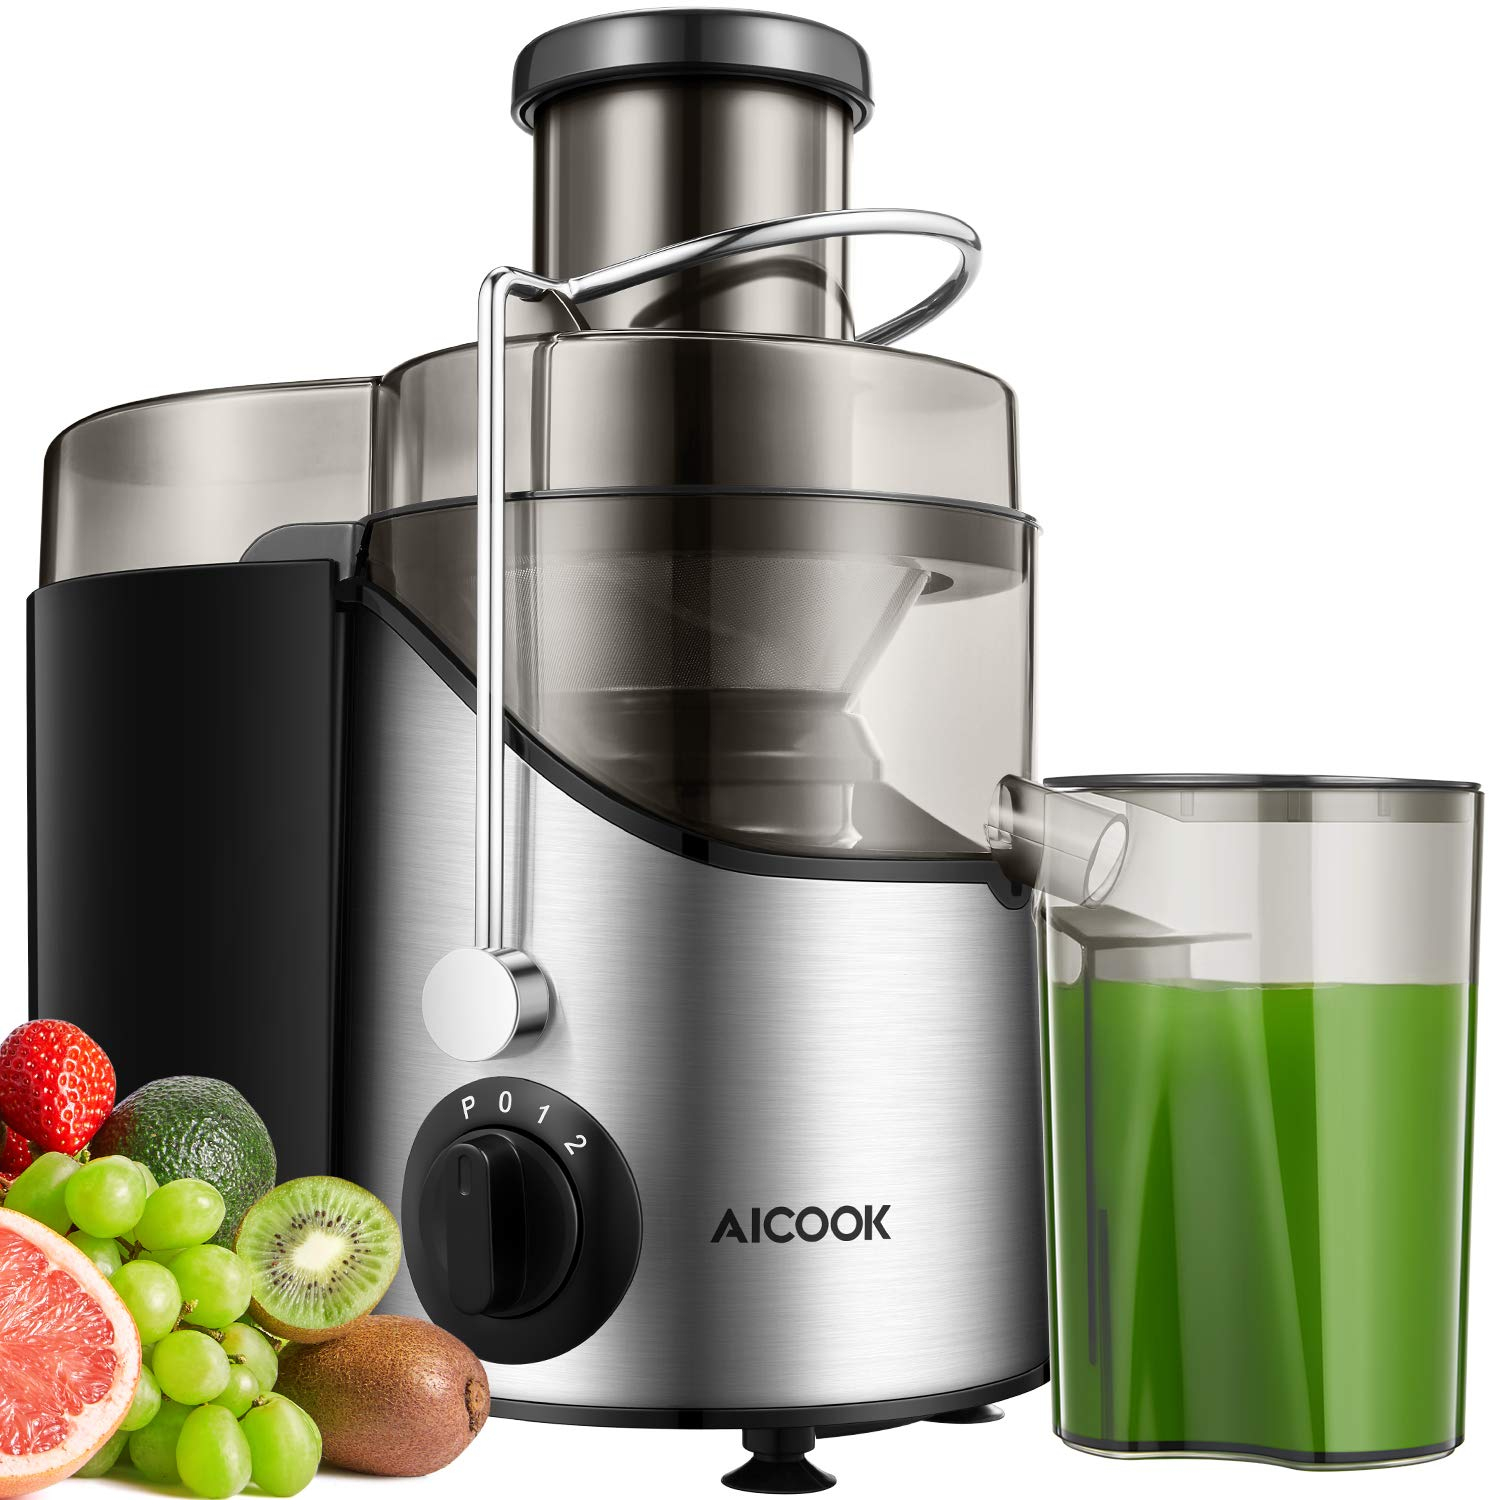 Juicer Machine, Aicook Juice Extractor with 3'' Wide Mouth, Non-Slip Feet, 3 Speed Centrifugal Juicer for Fruits and Vegs, BPA-Free